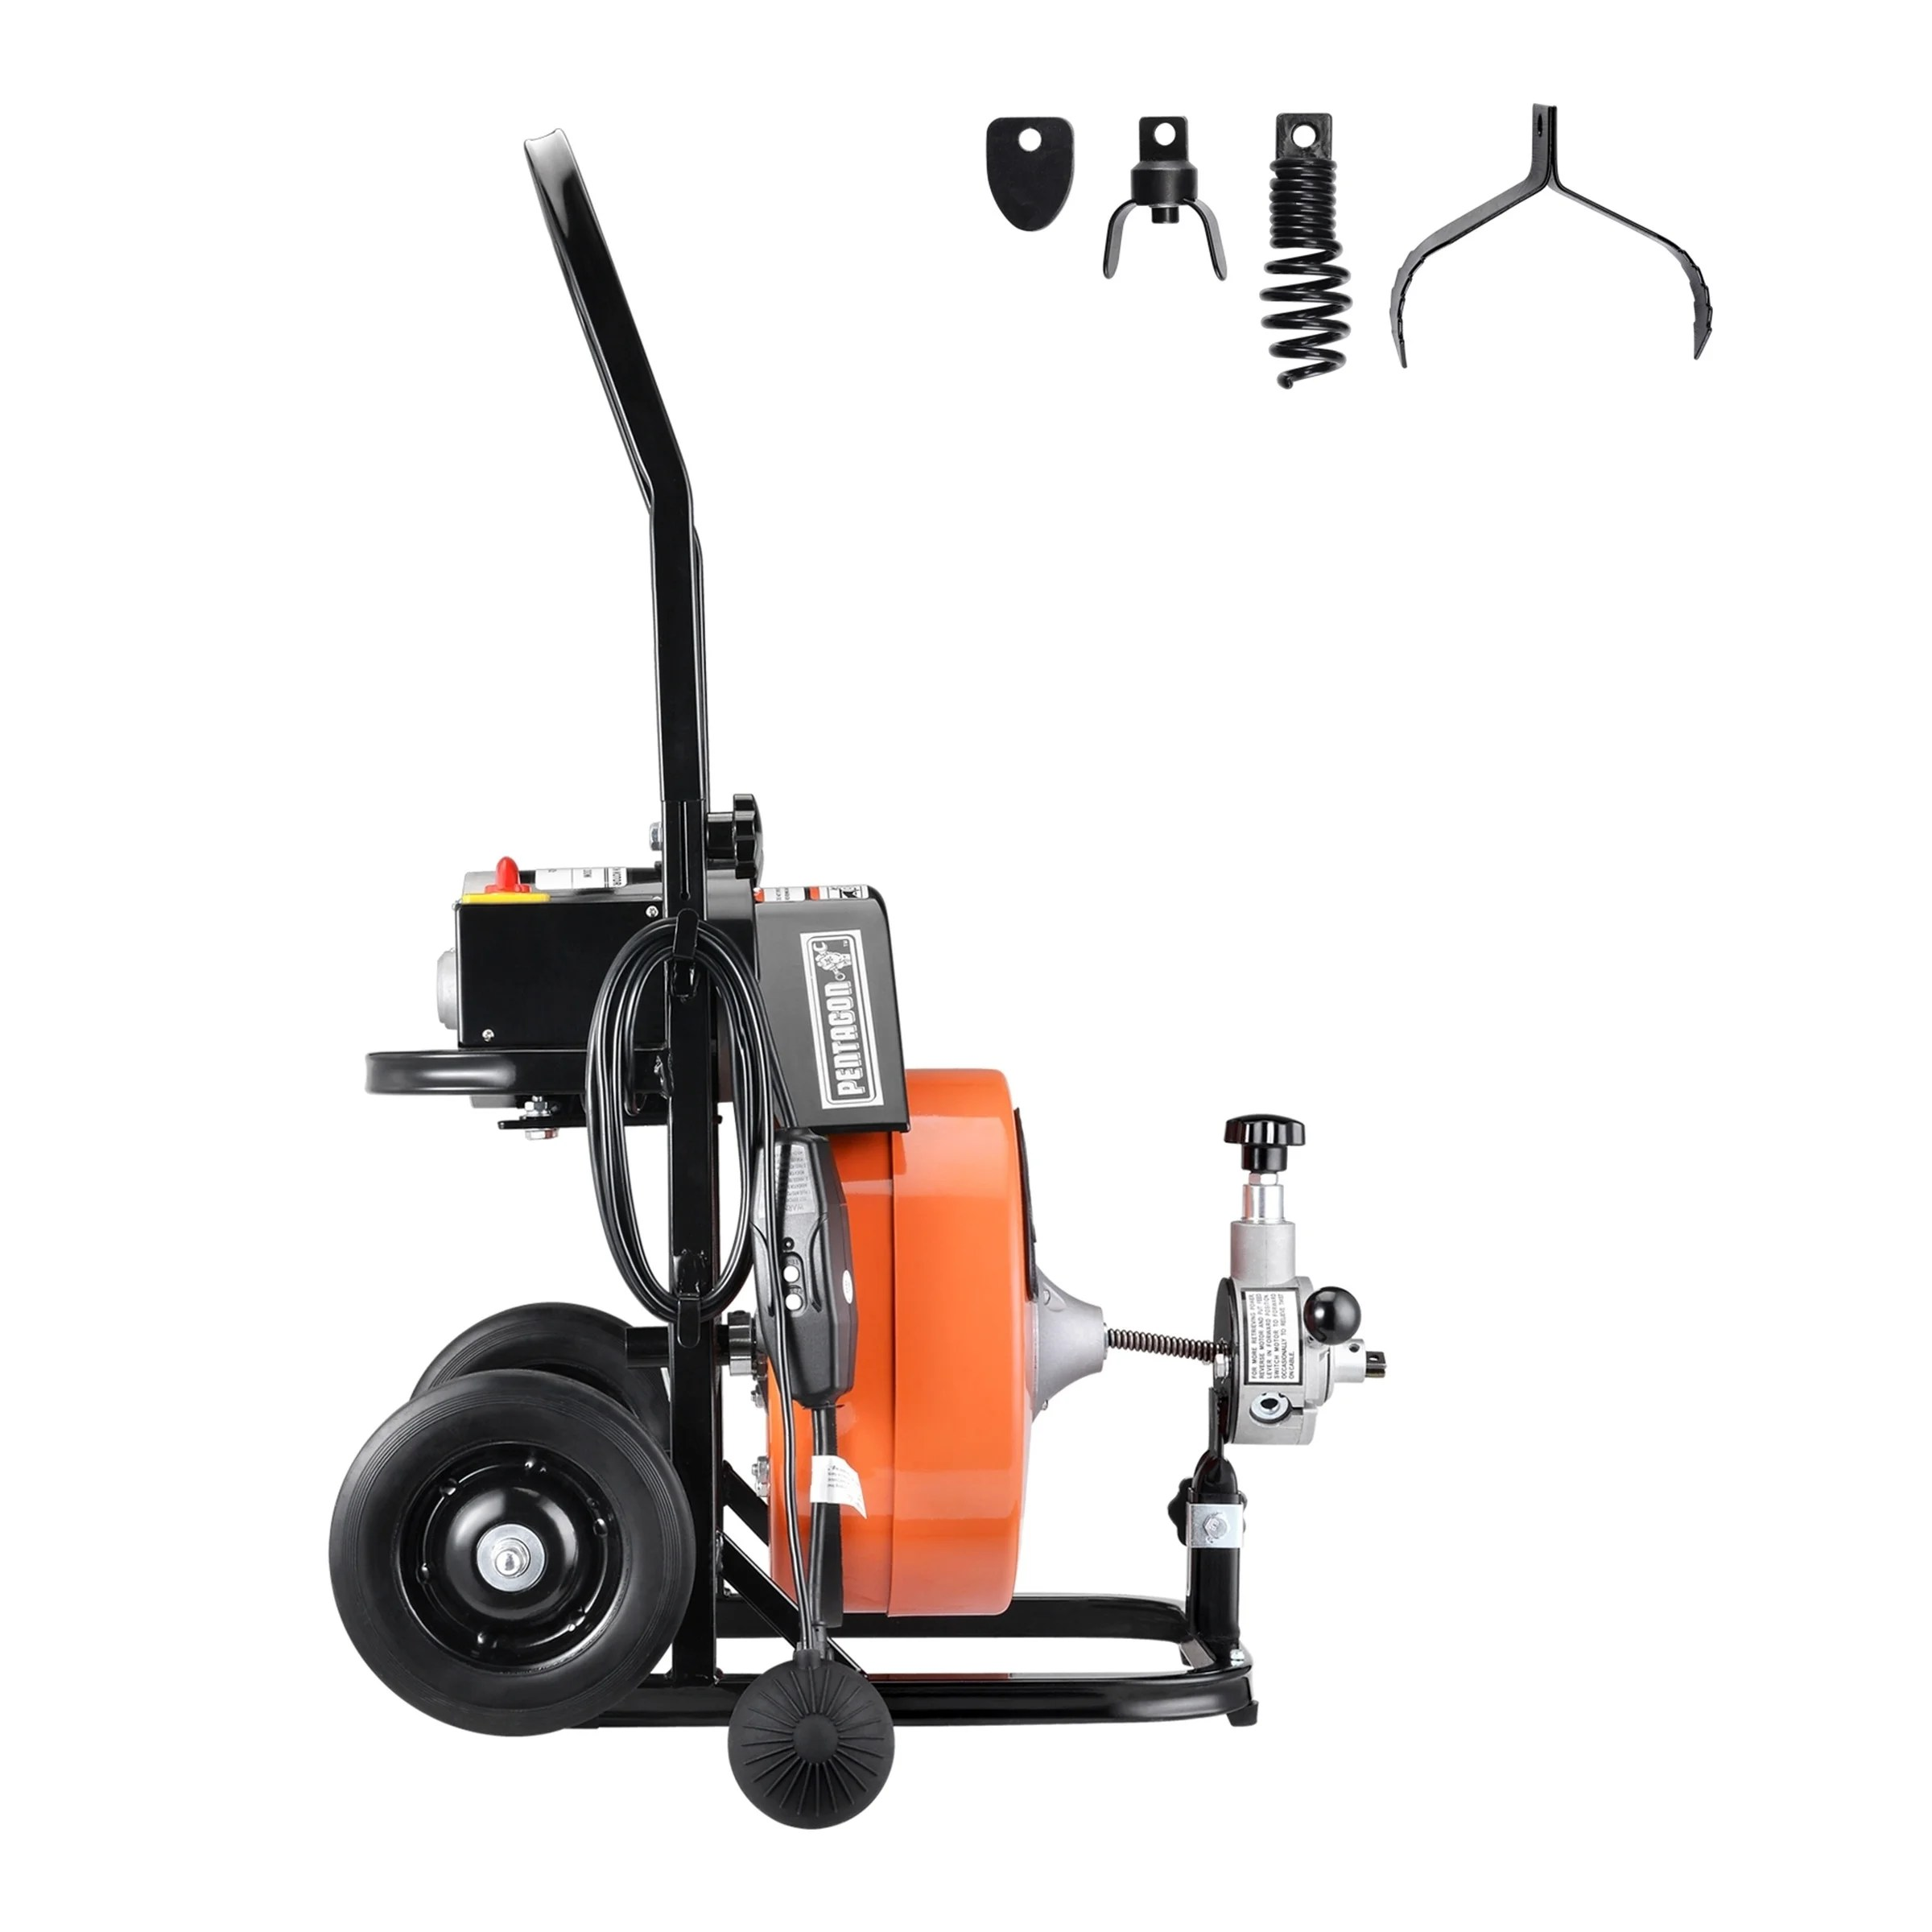 Shop Drum Power Auger 1 2 Inch By 50 Ft Electric Drain Cleaner Snake Compact With Built In Gfci Pentagon Tool Overstock 22746951